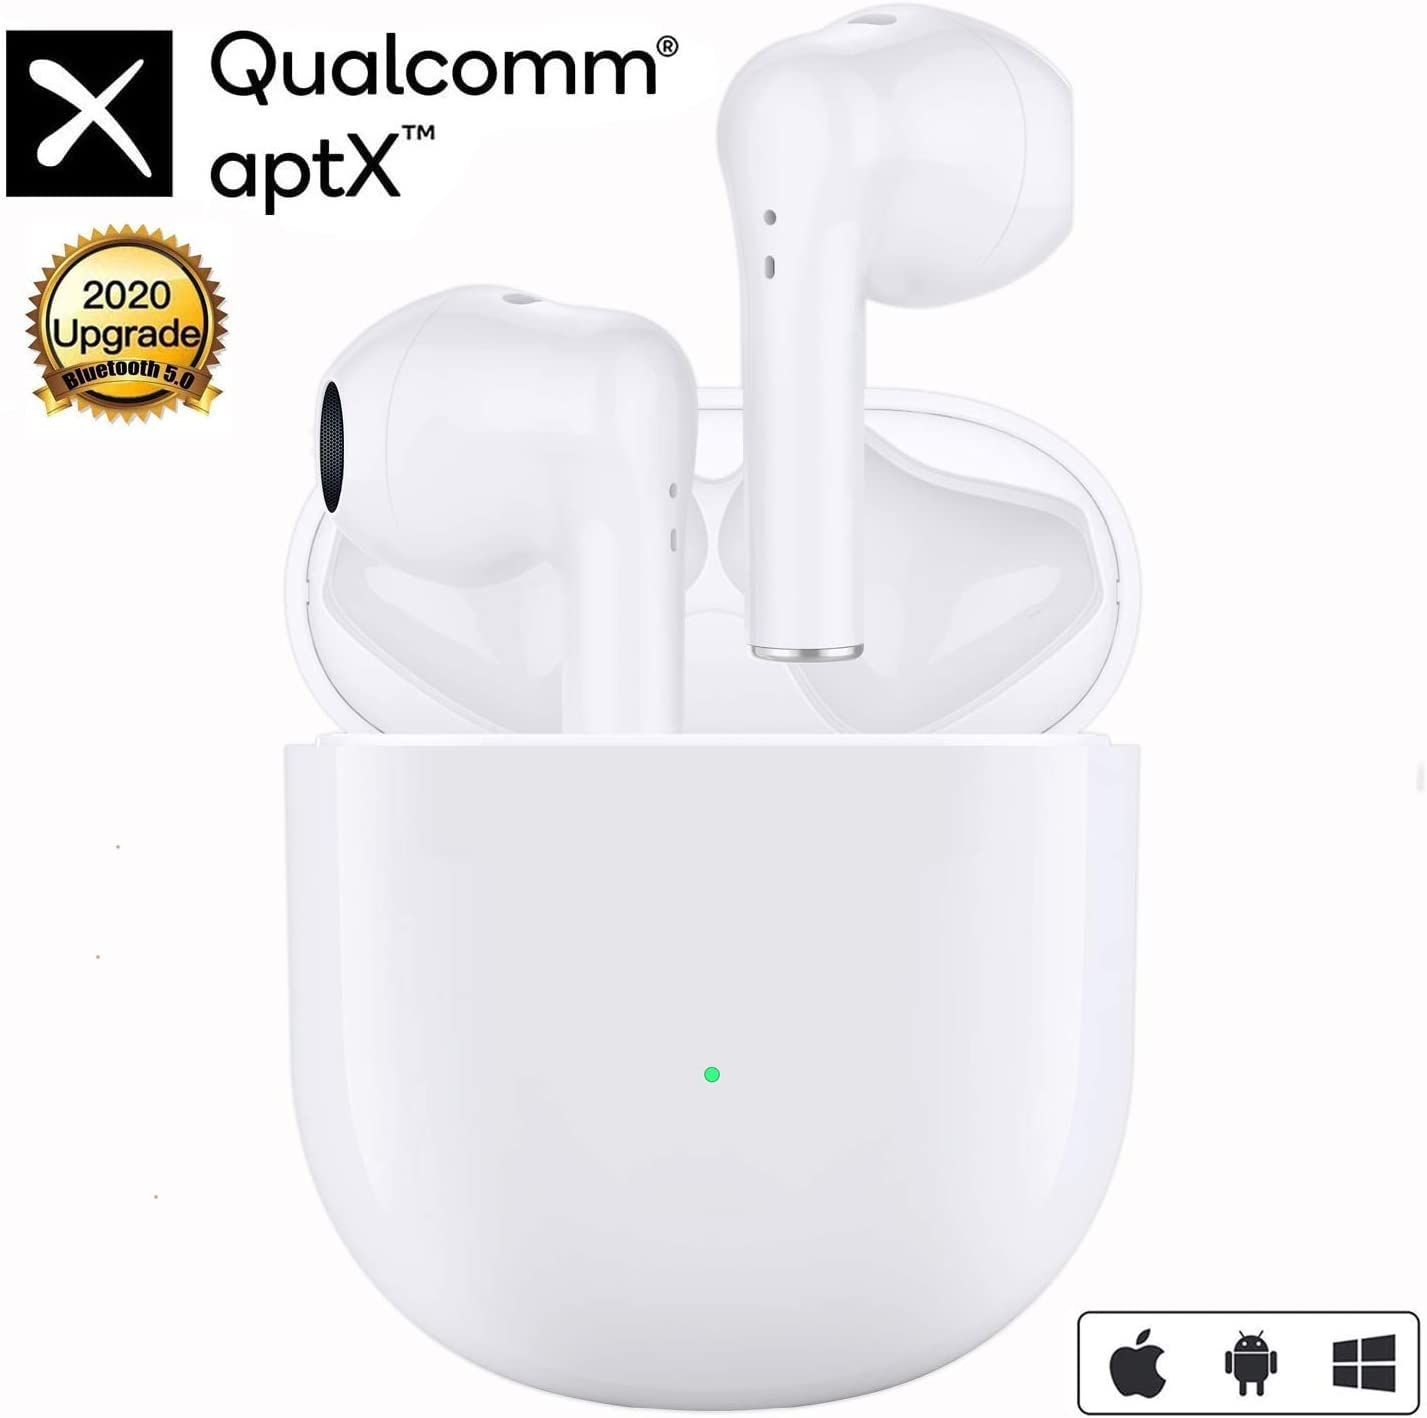 Wireless Earbuds Touch Control Bluetooth 5.0 Headphones in-Ear with Charging Case 3D Stereo Earphones IPX5 Waterproof Bluetooth Earbuds Built in Mic Headsets Deep Bass for iPhone Android